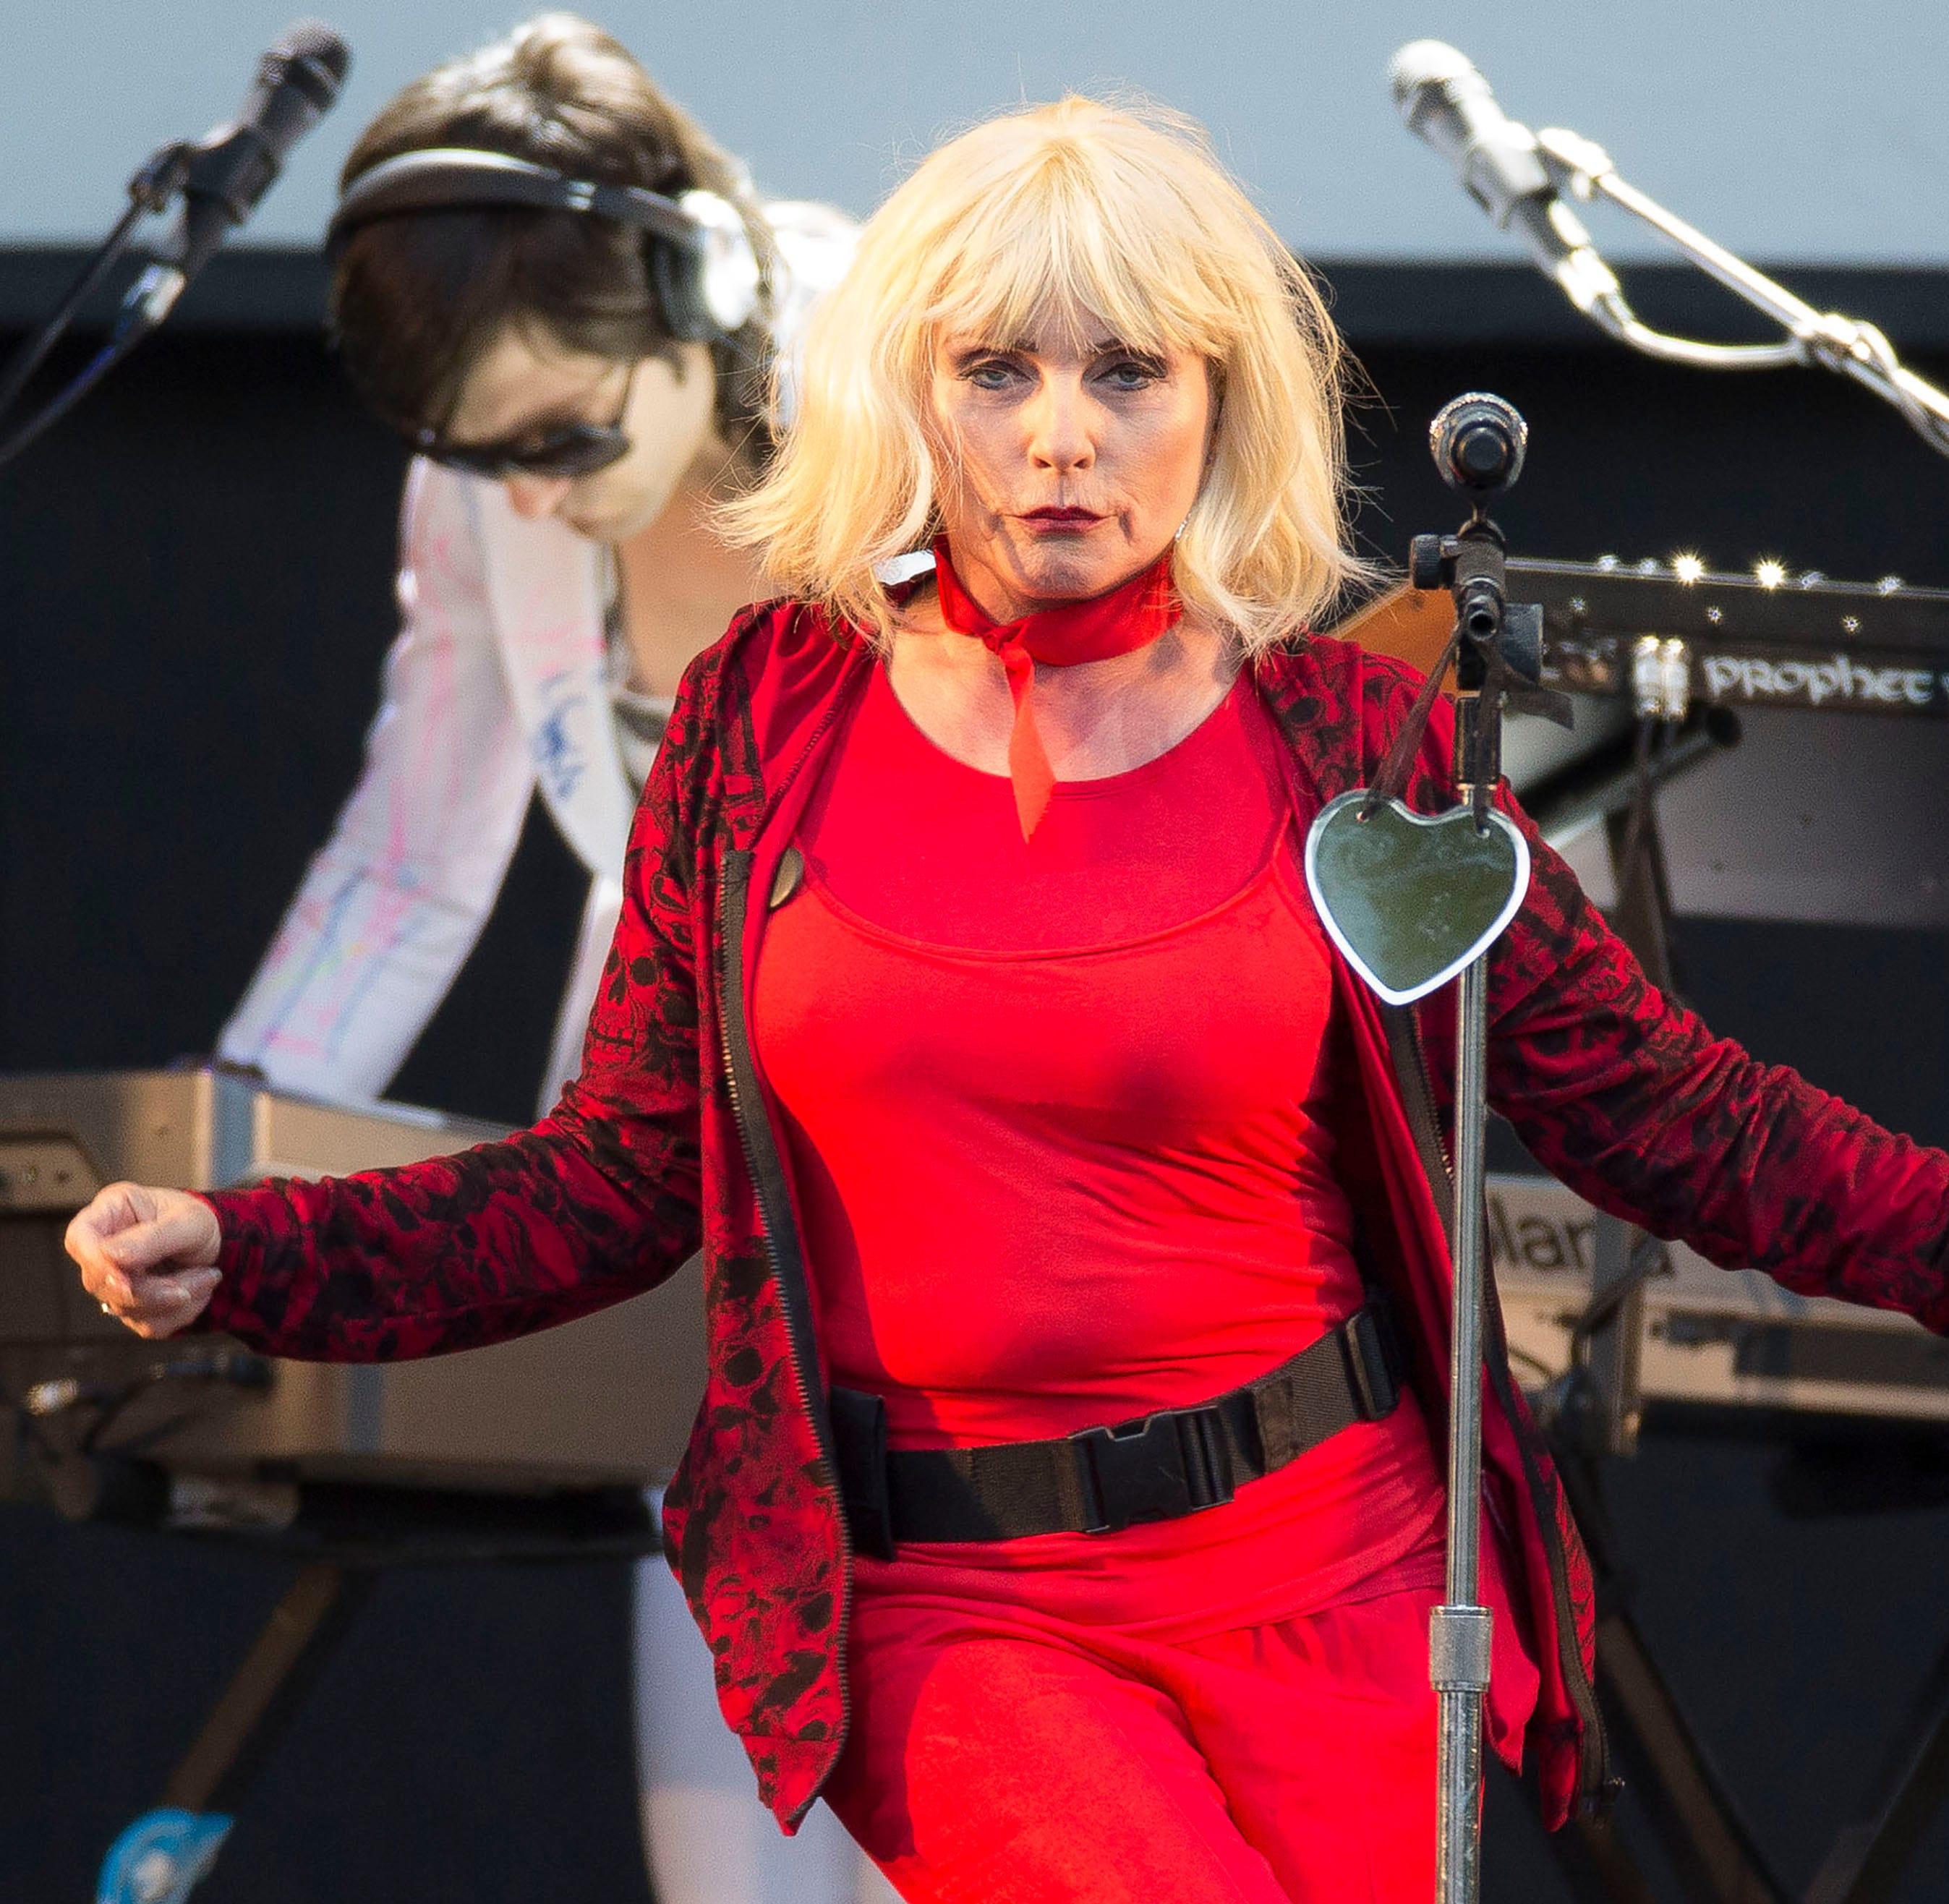 Look like Debbie Harry of Blondie? Hawthorne wants to give you a prize